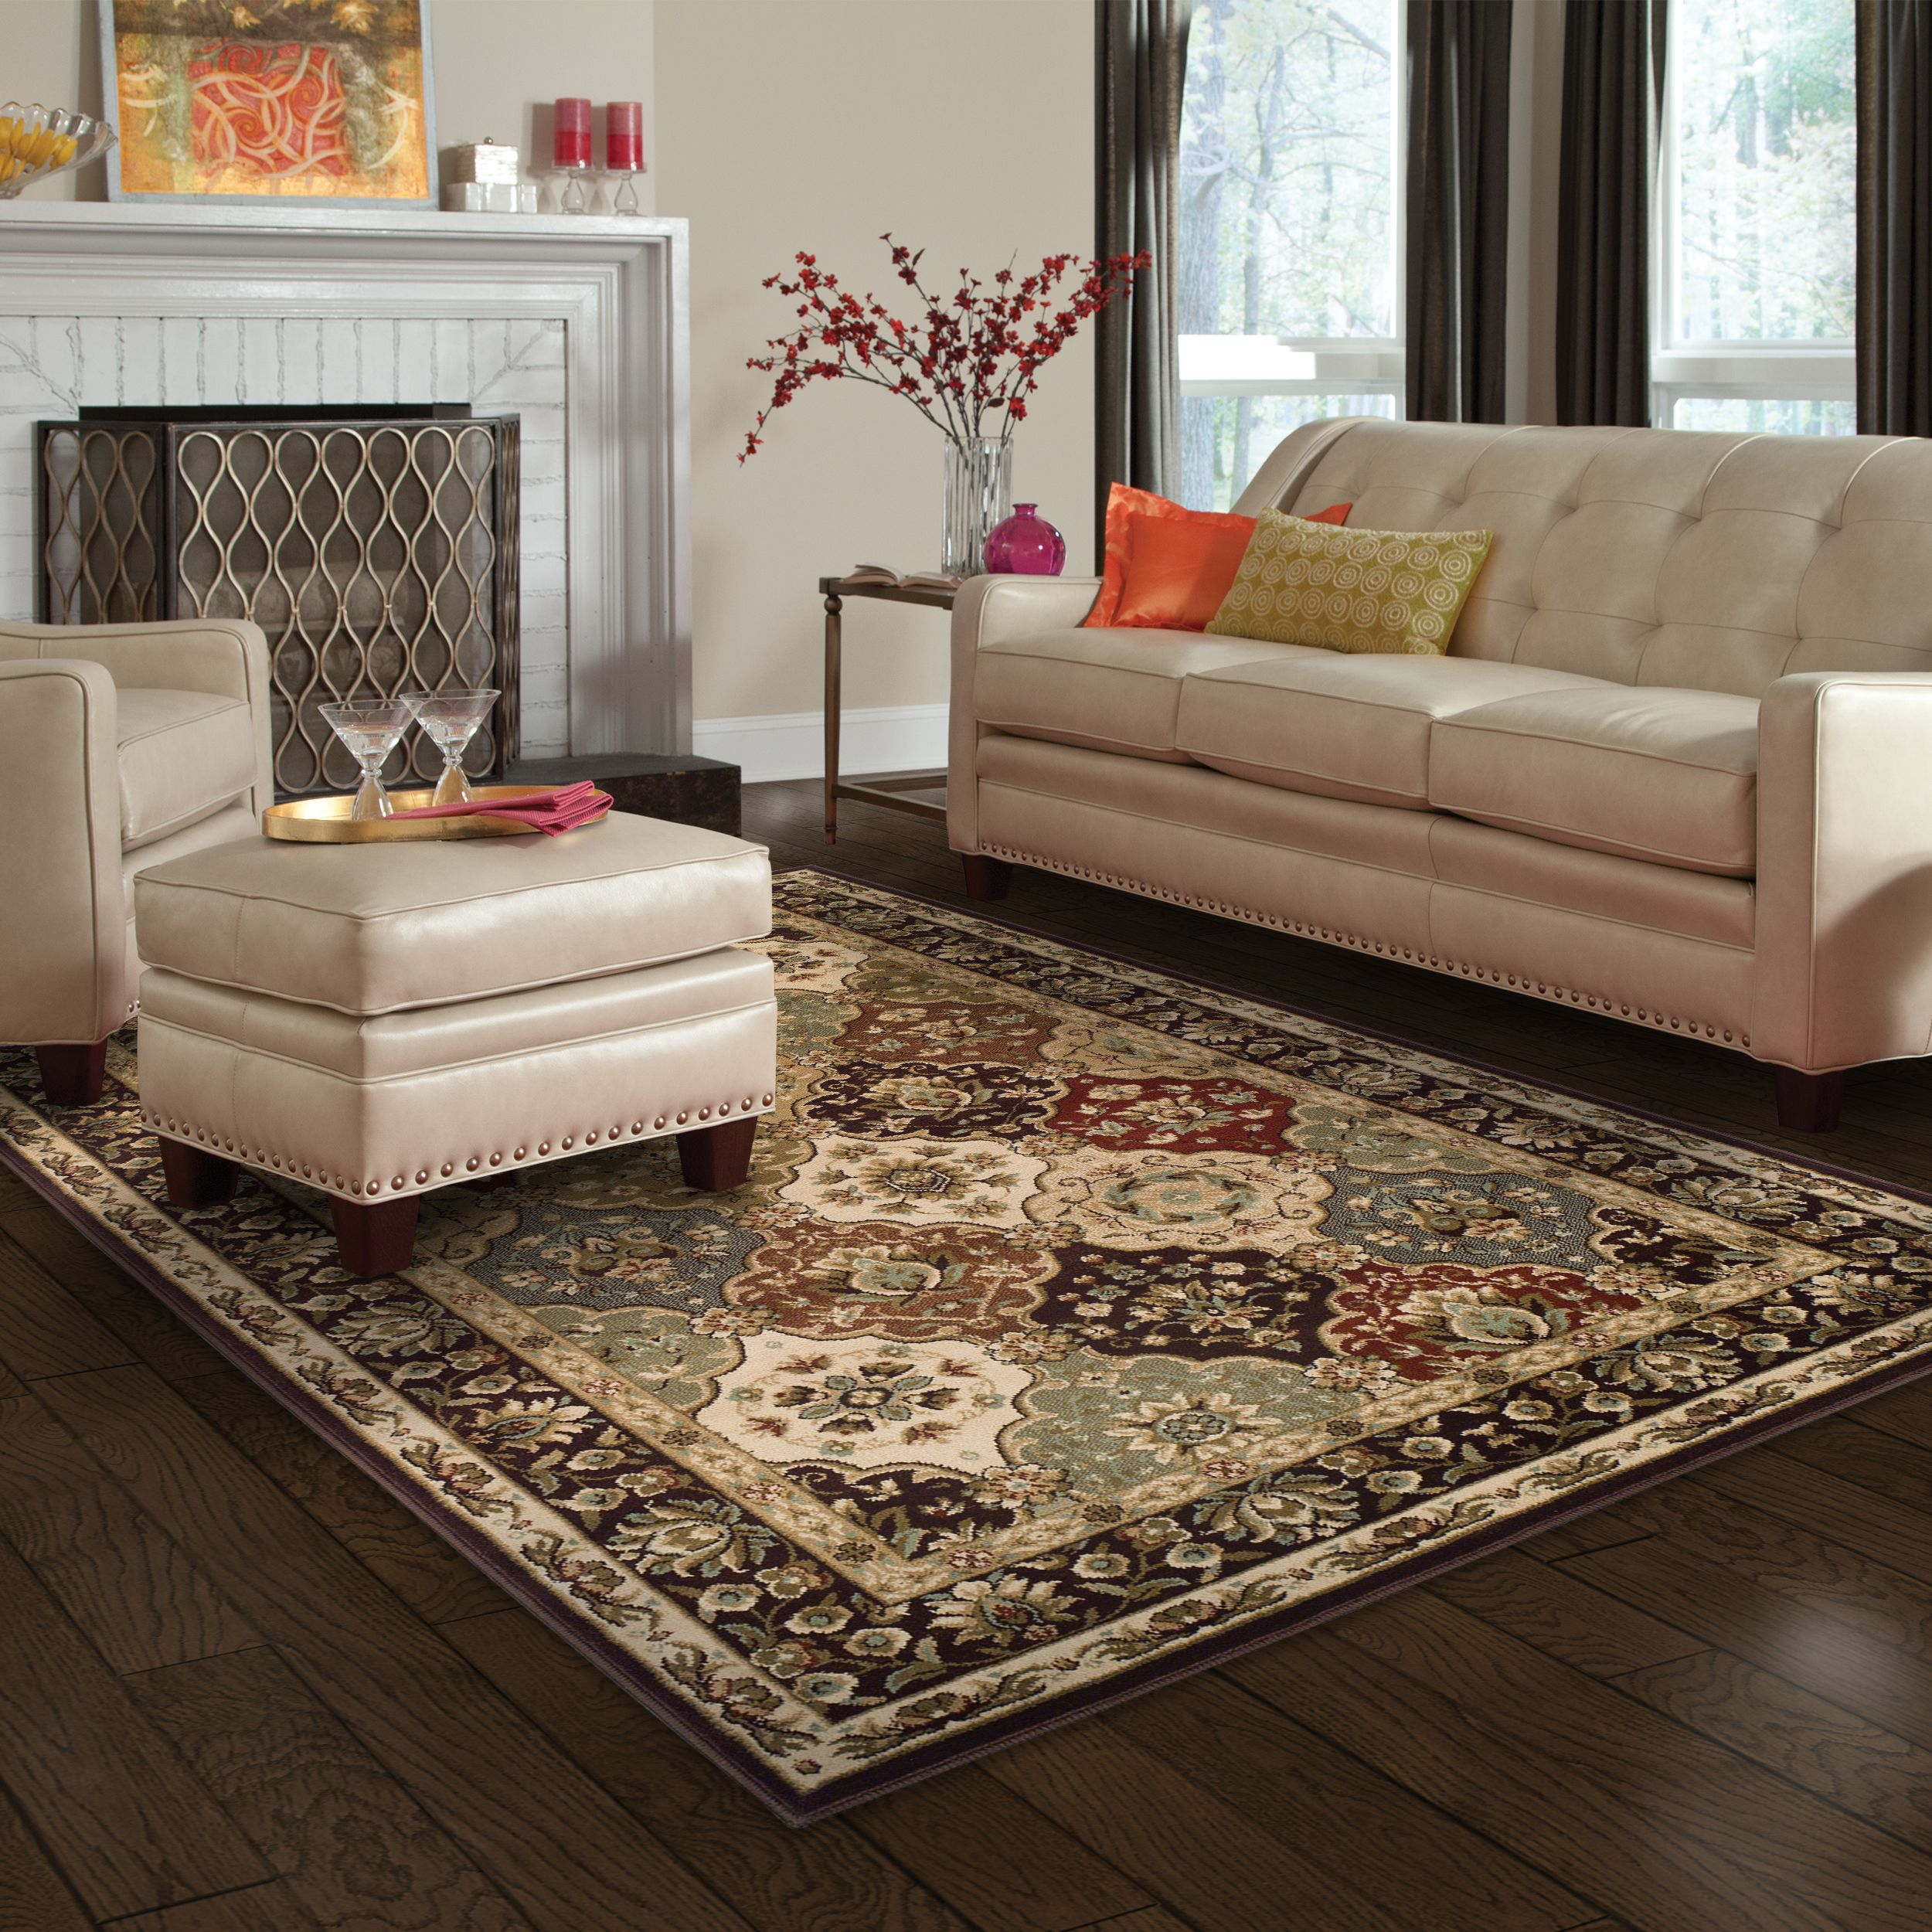 Superior Elegant Palmyra Collection with 10mm Pile and Jute Backing, Moisture Resistant and Anti-Static Indoor Area Rug